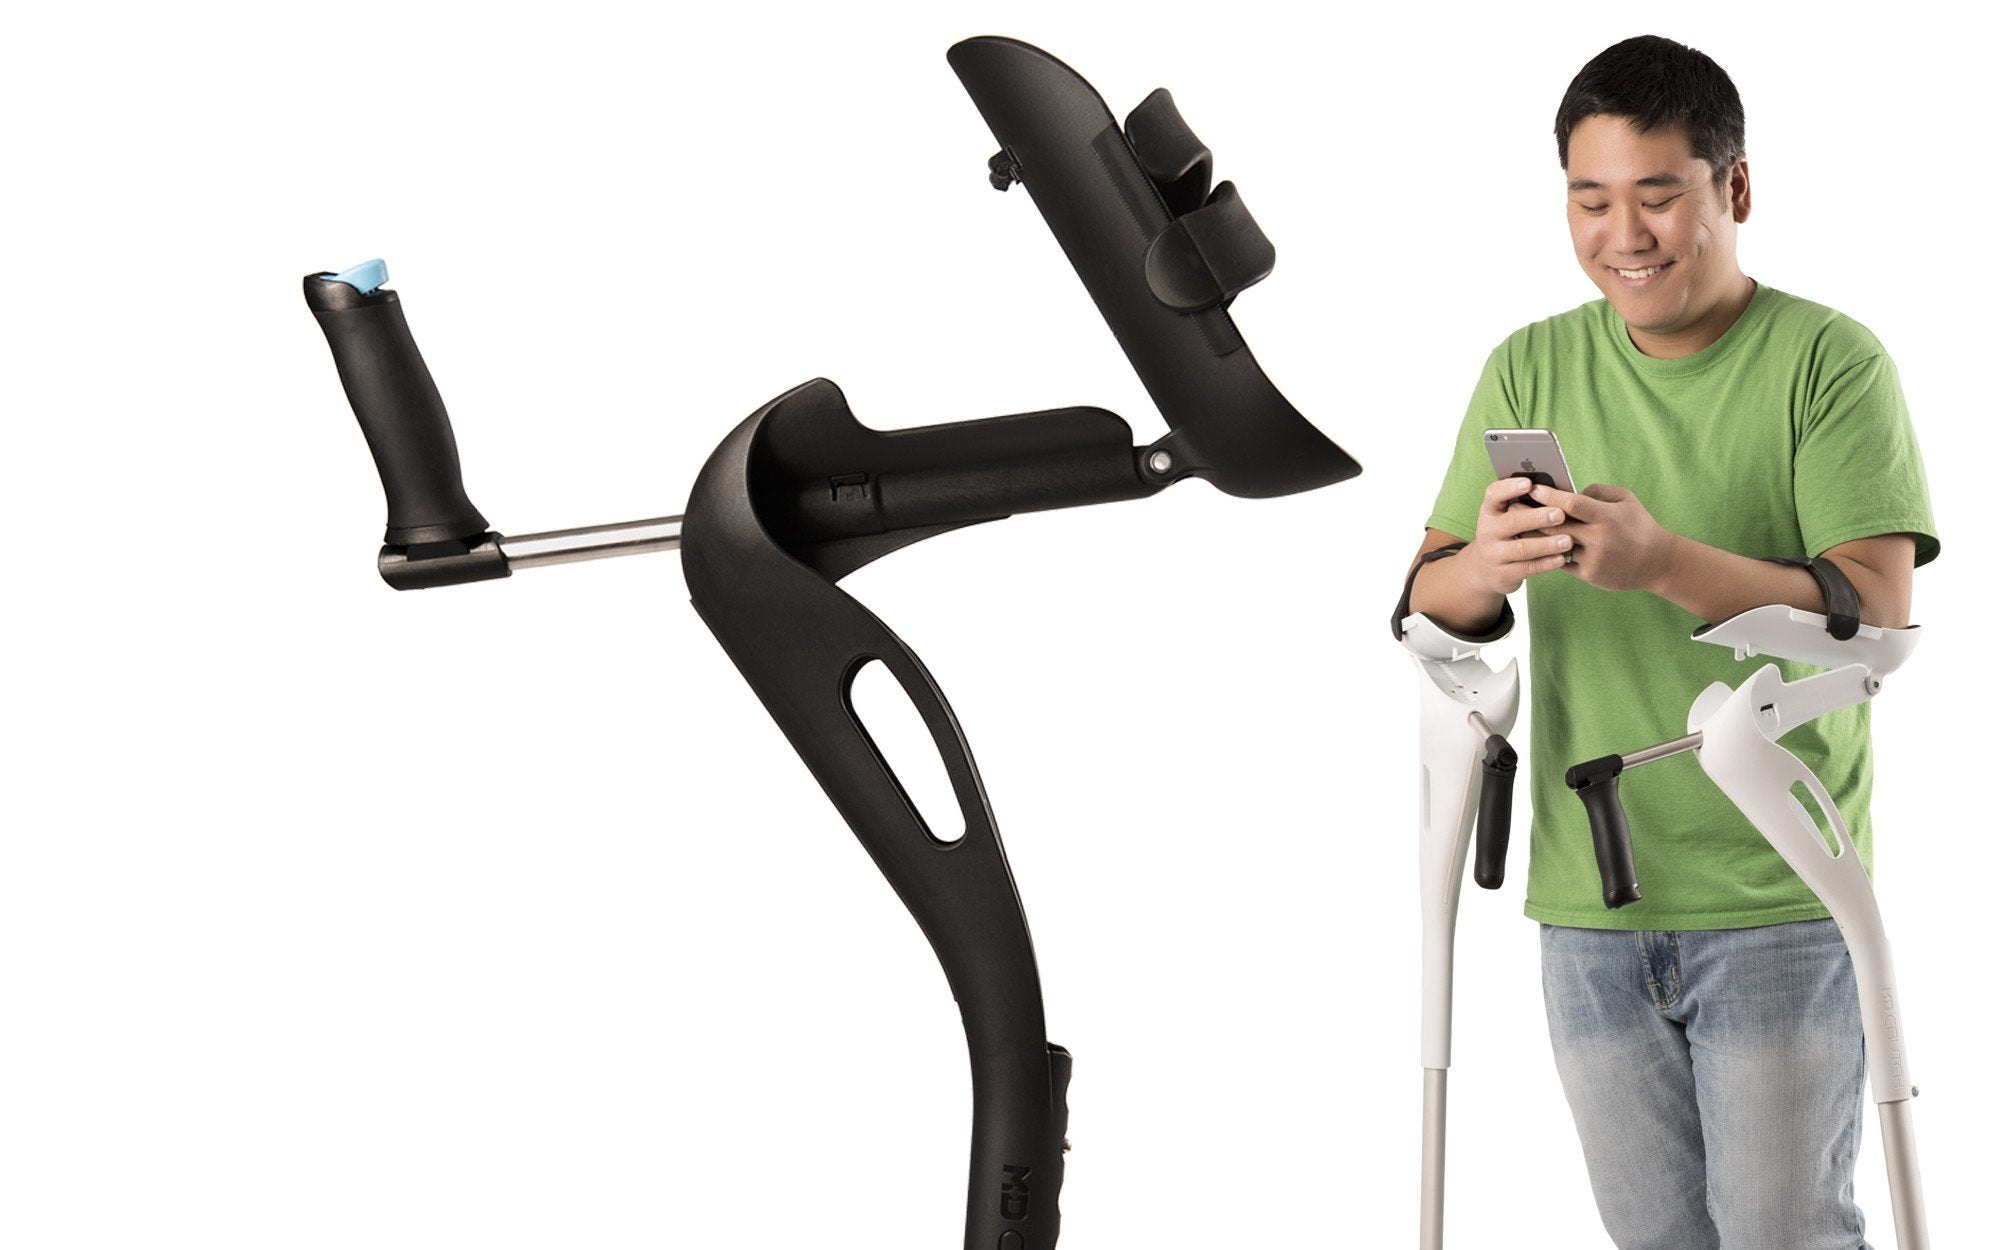 The hinged arm cradle of the M+D Crutch can be unlocked, allowing the user to engage in everyday activities